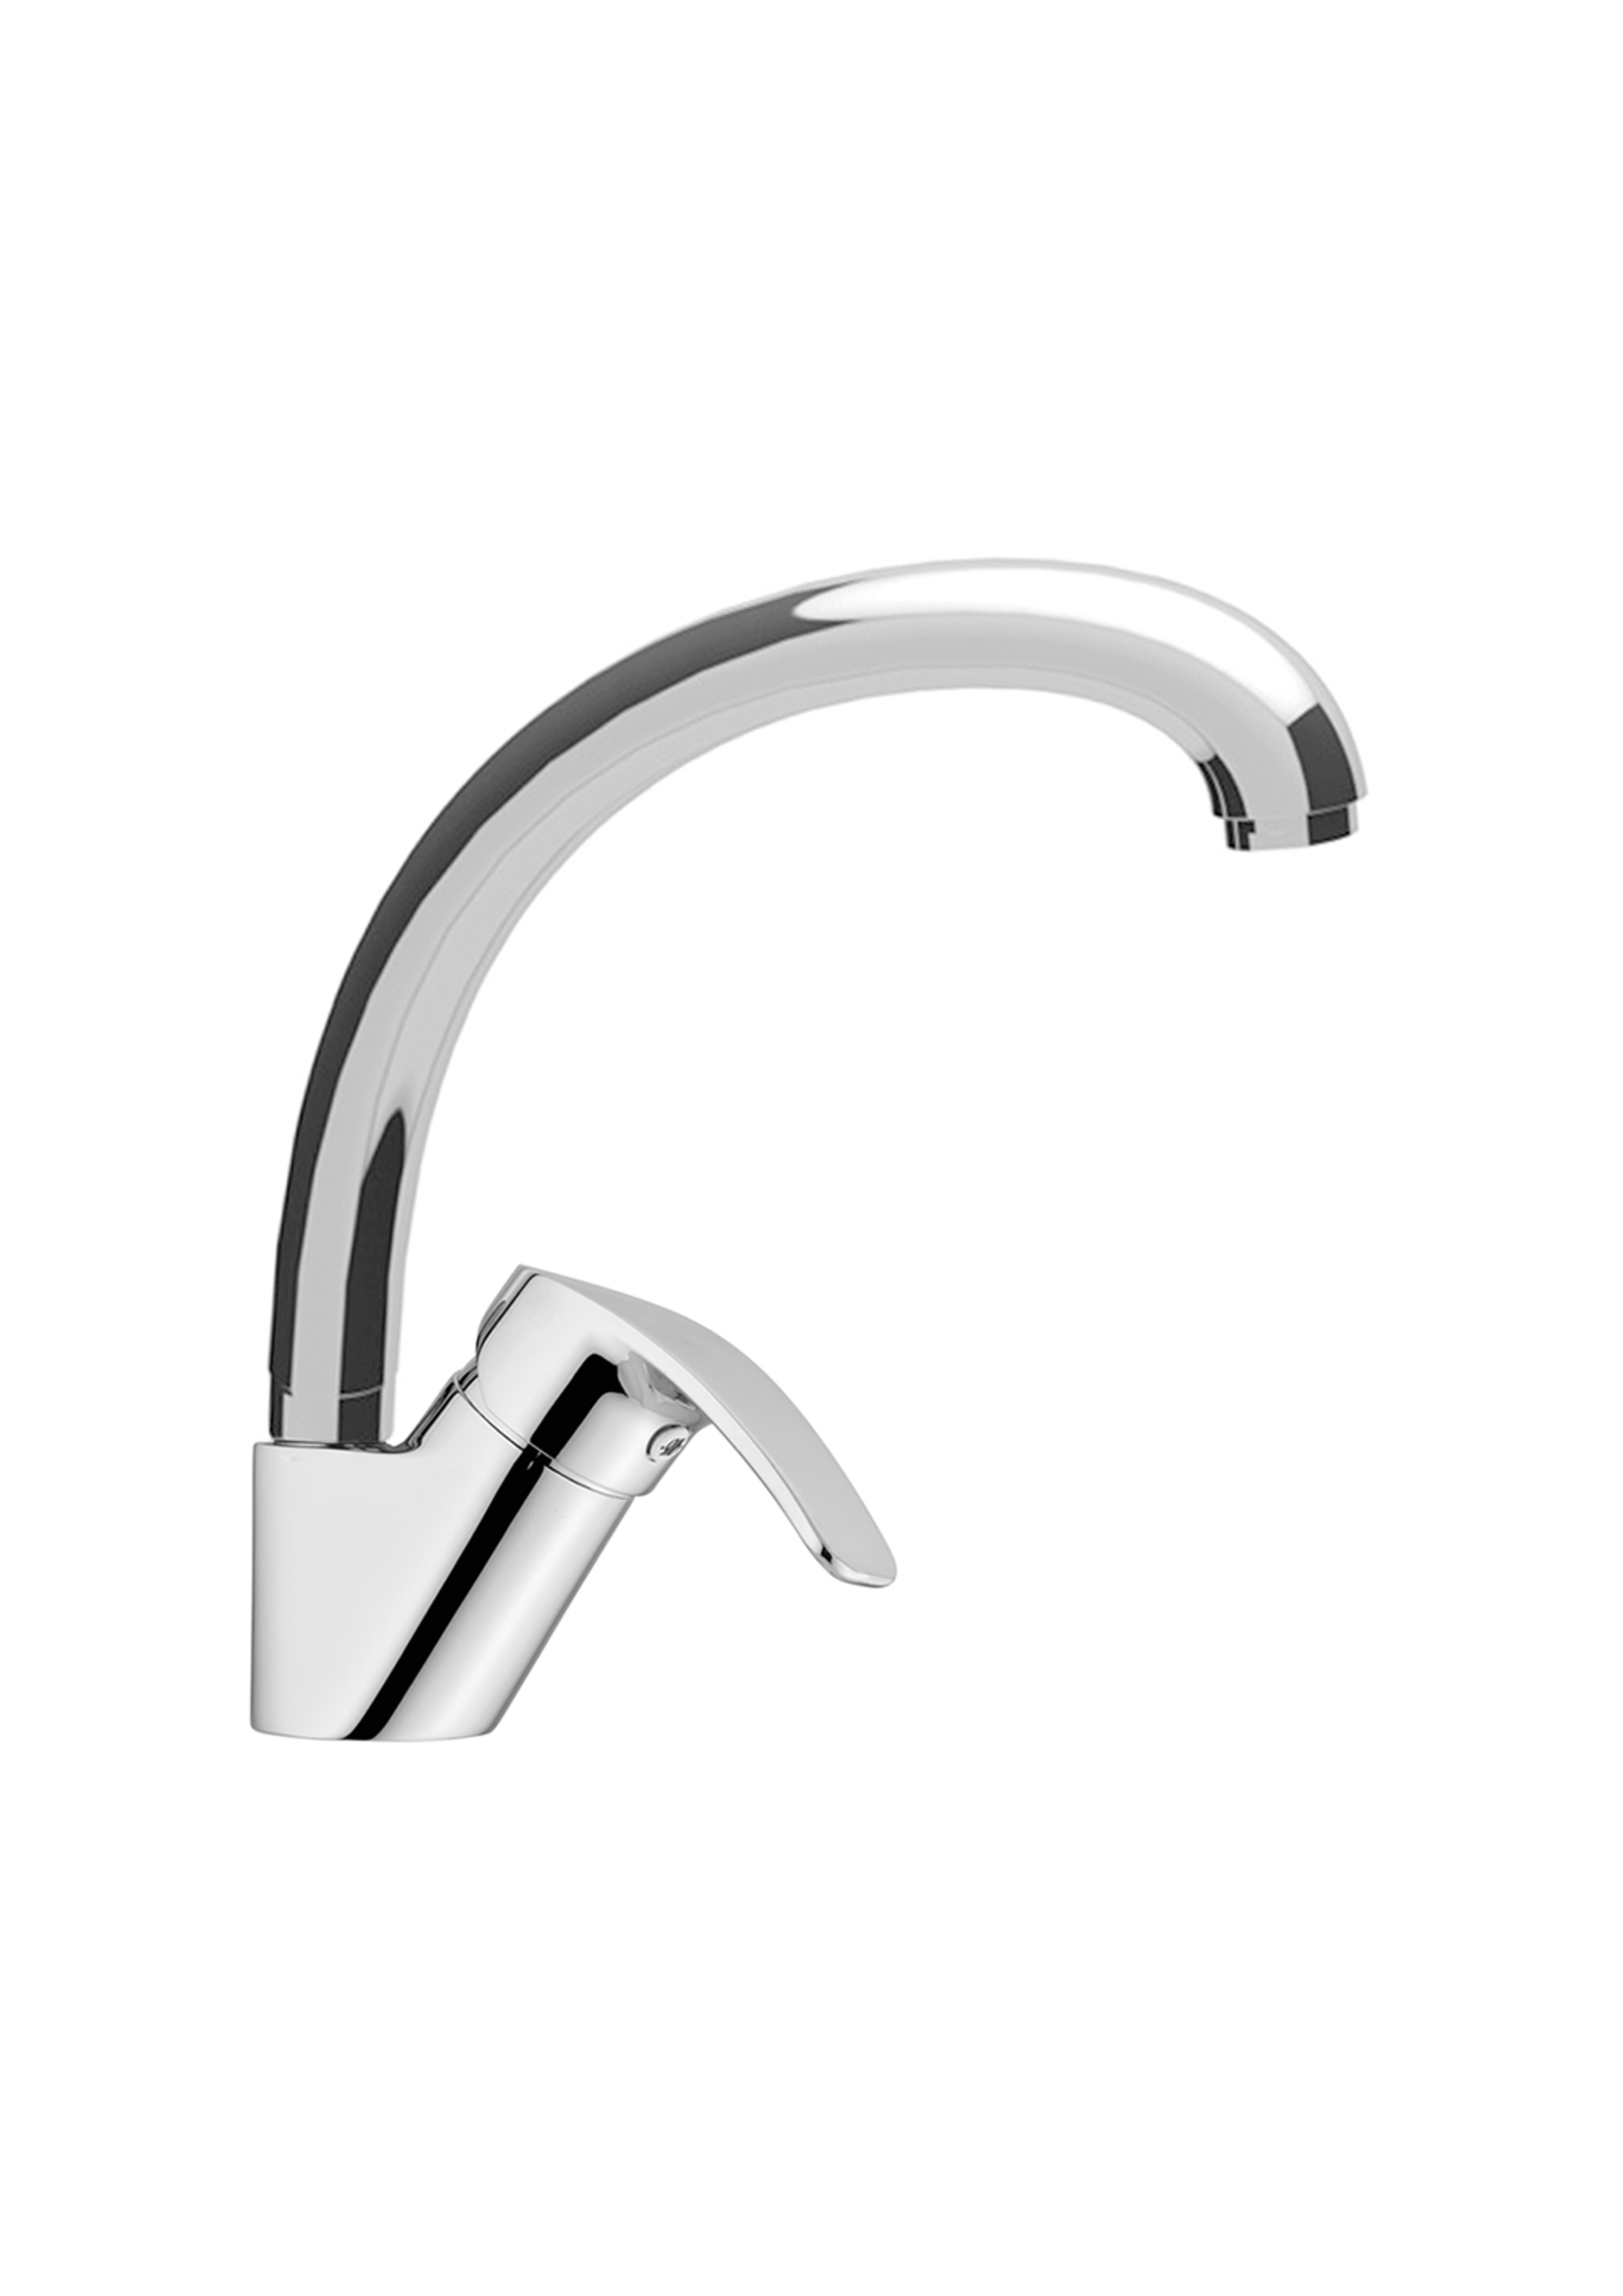 Immagine HD KIWI Sink mixer swivelling tube spout